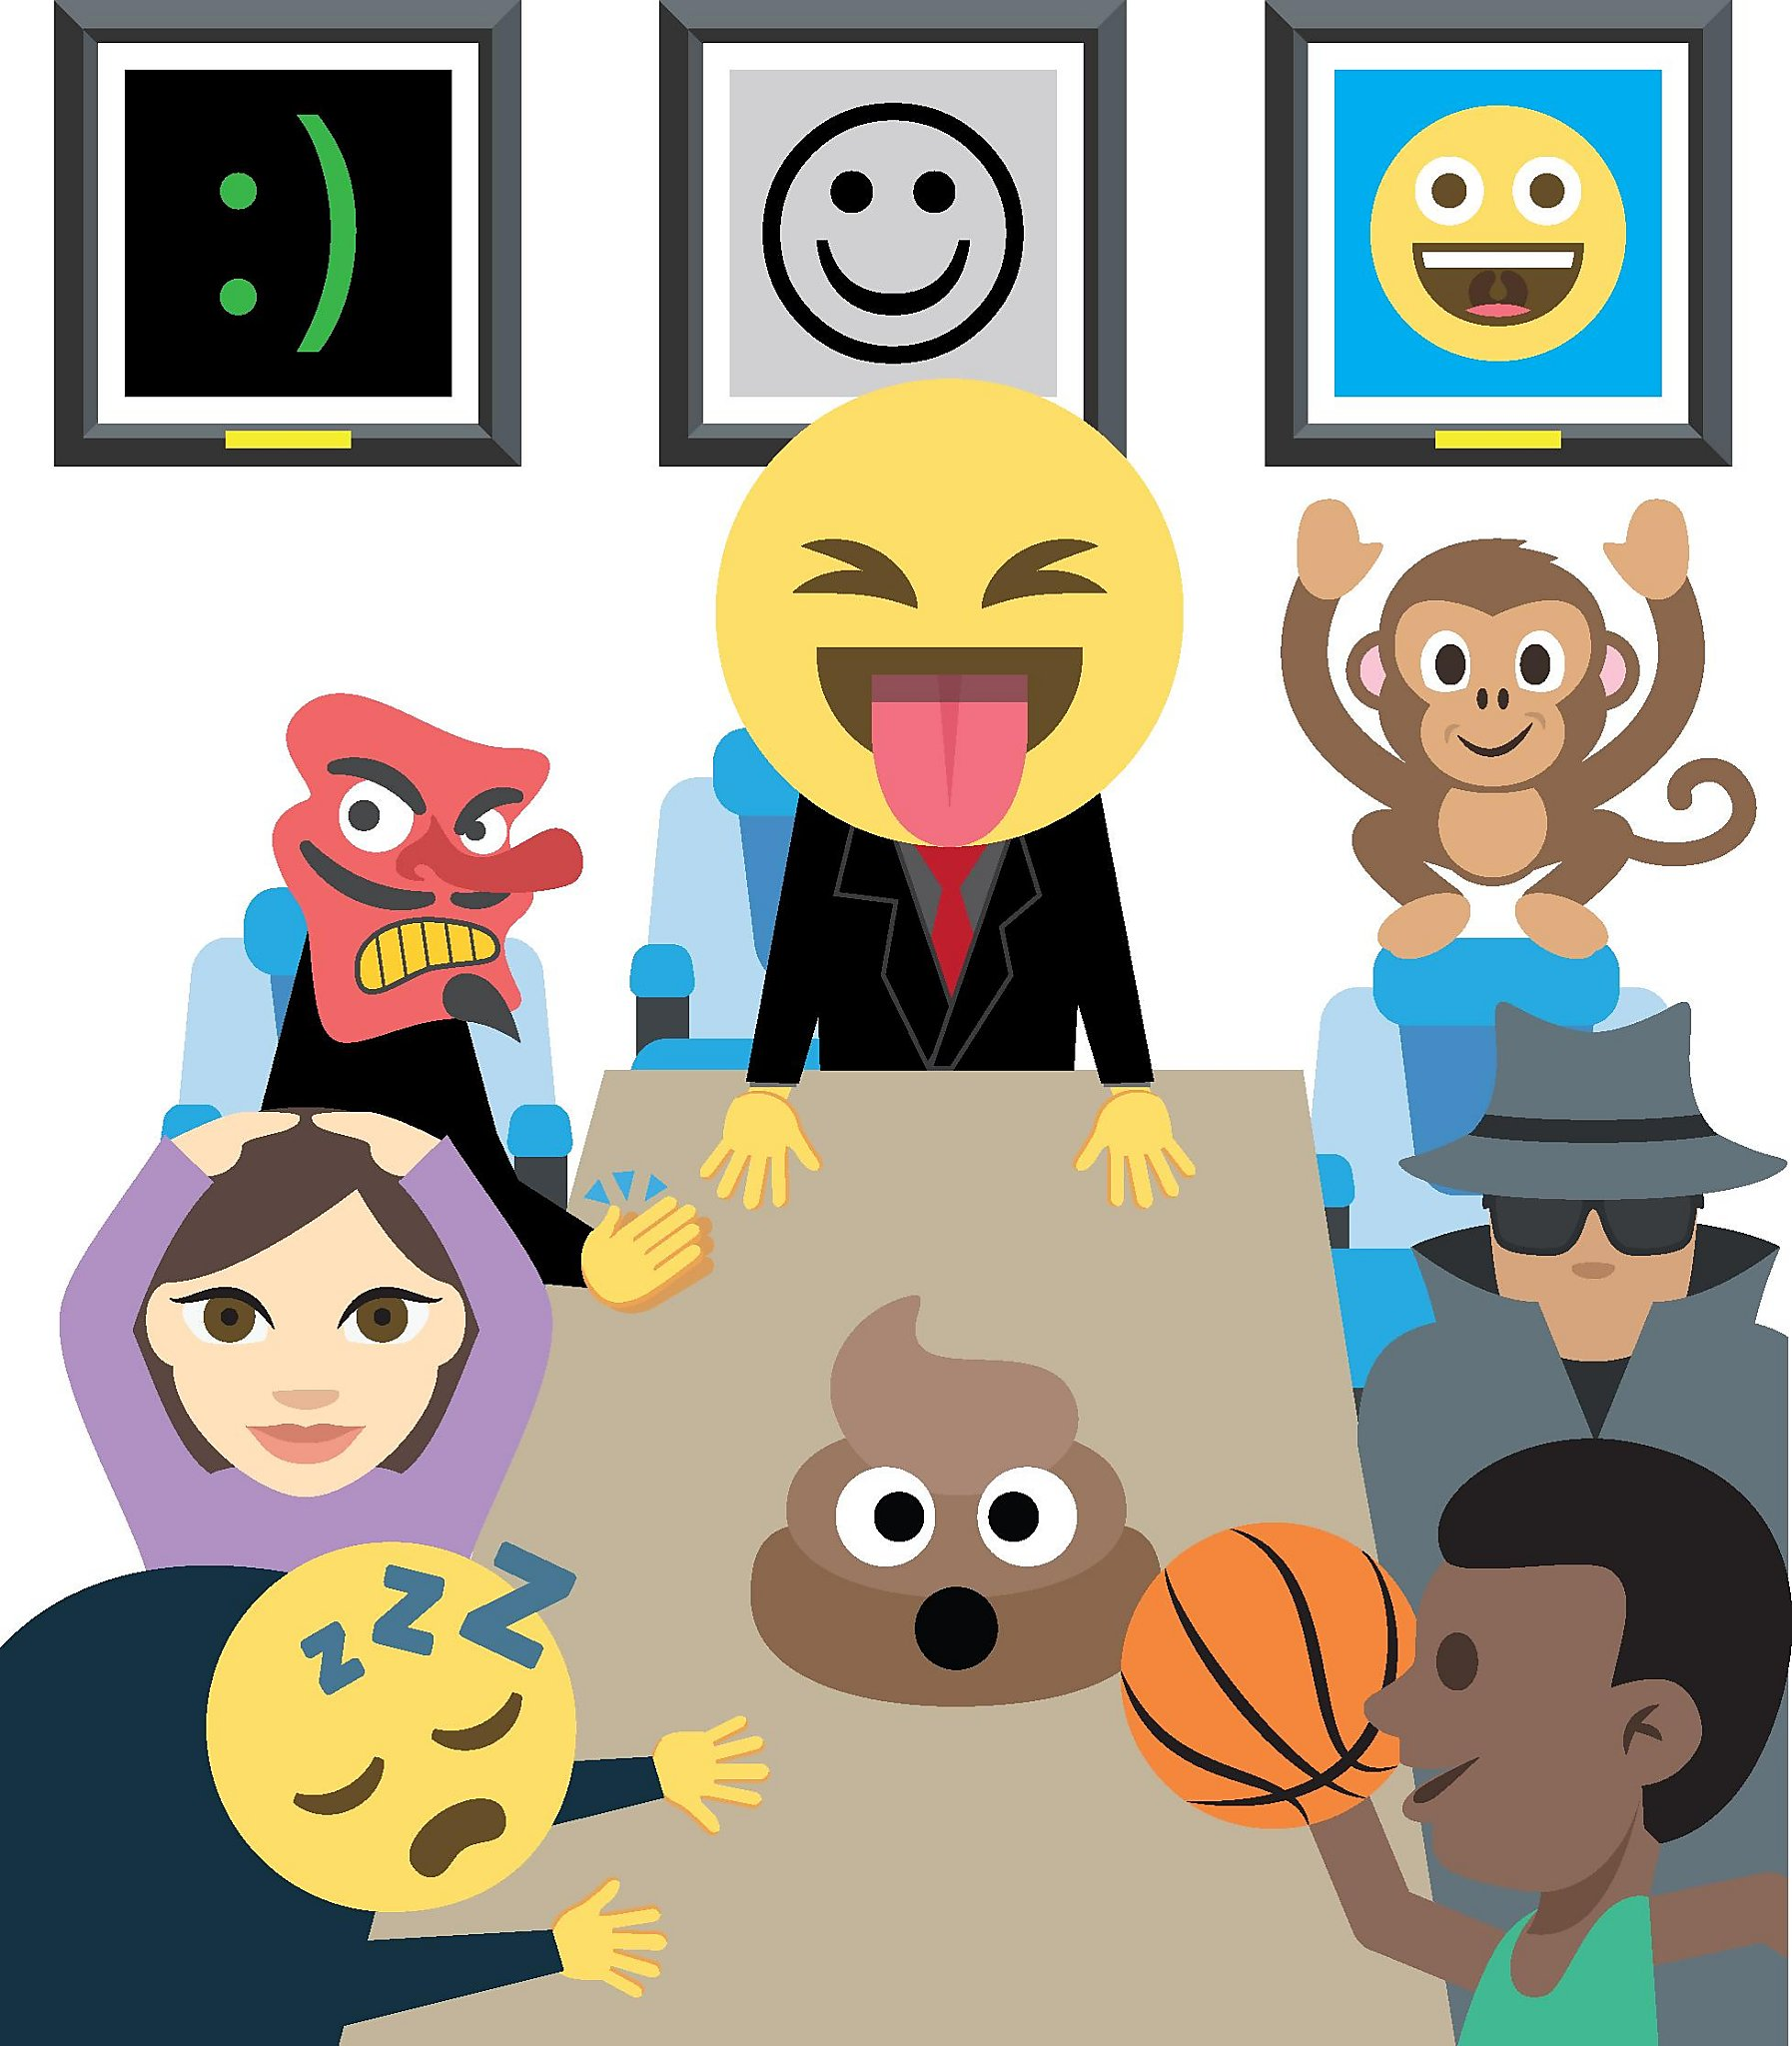 Emoji Illuminati? Obscure group polices the world's smiley faces